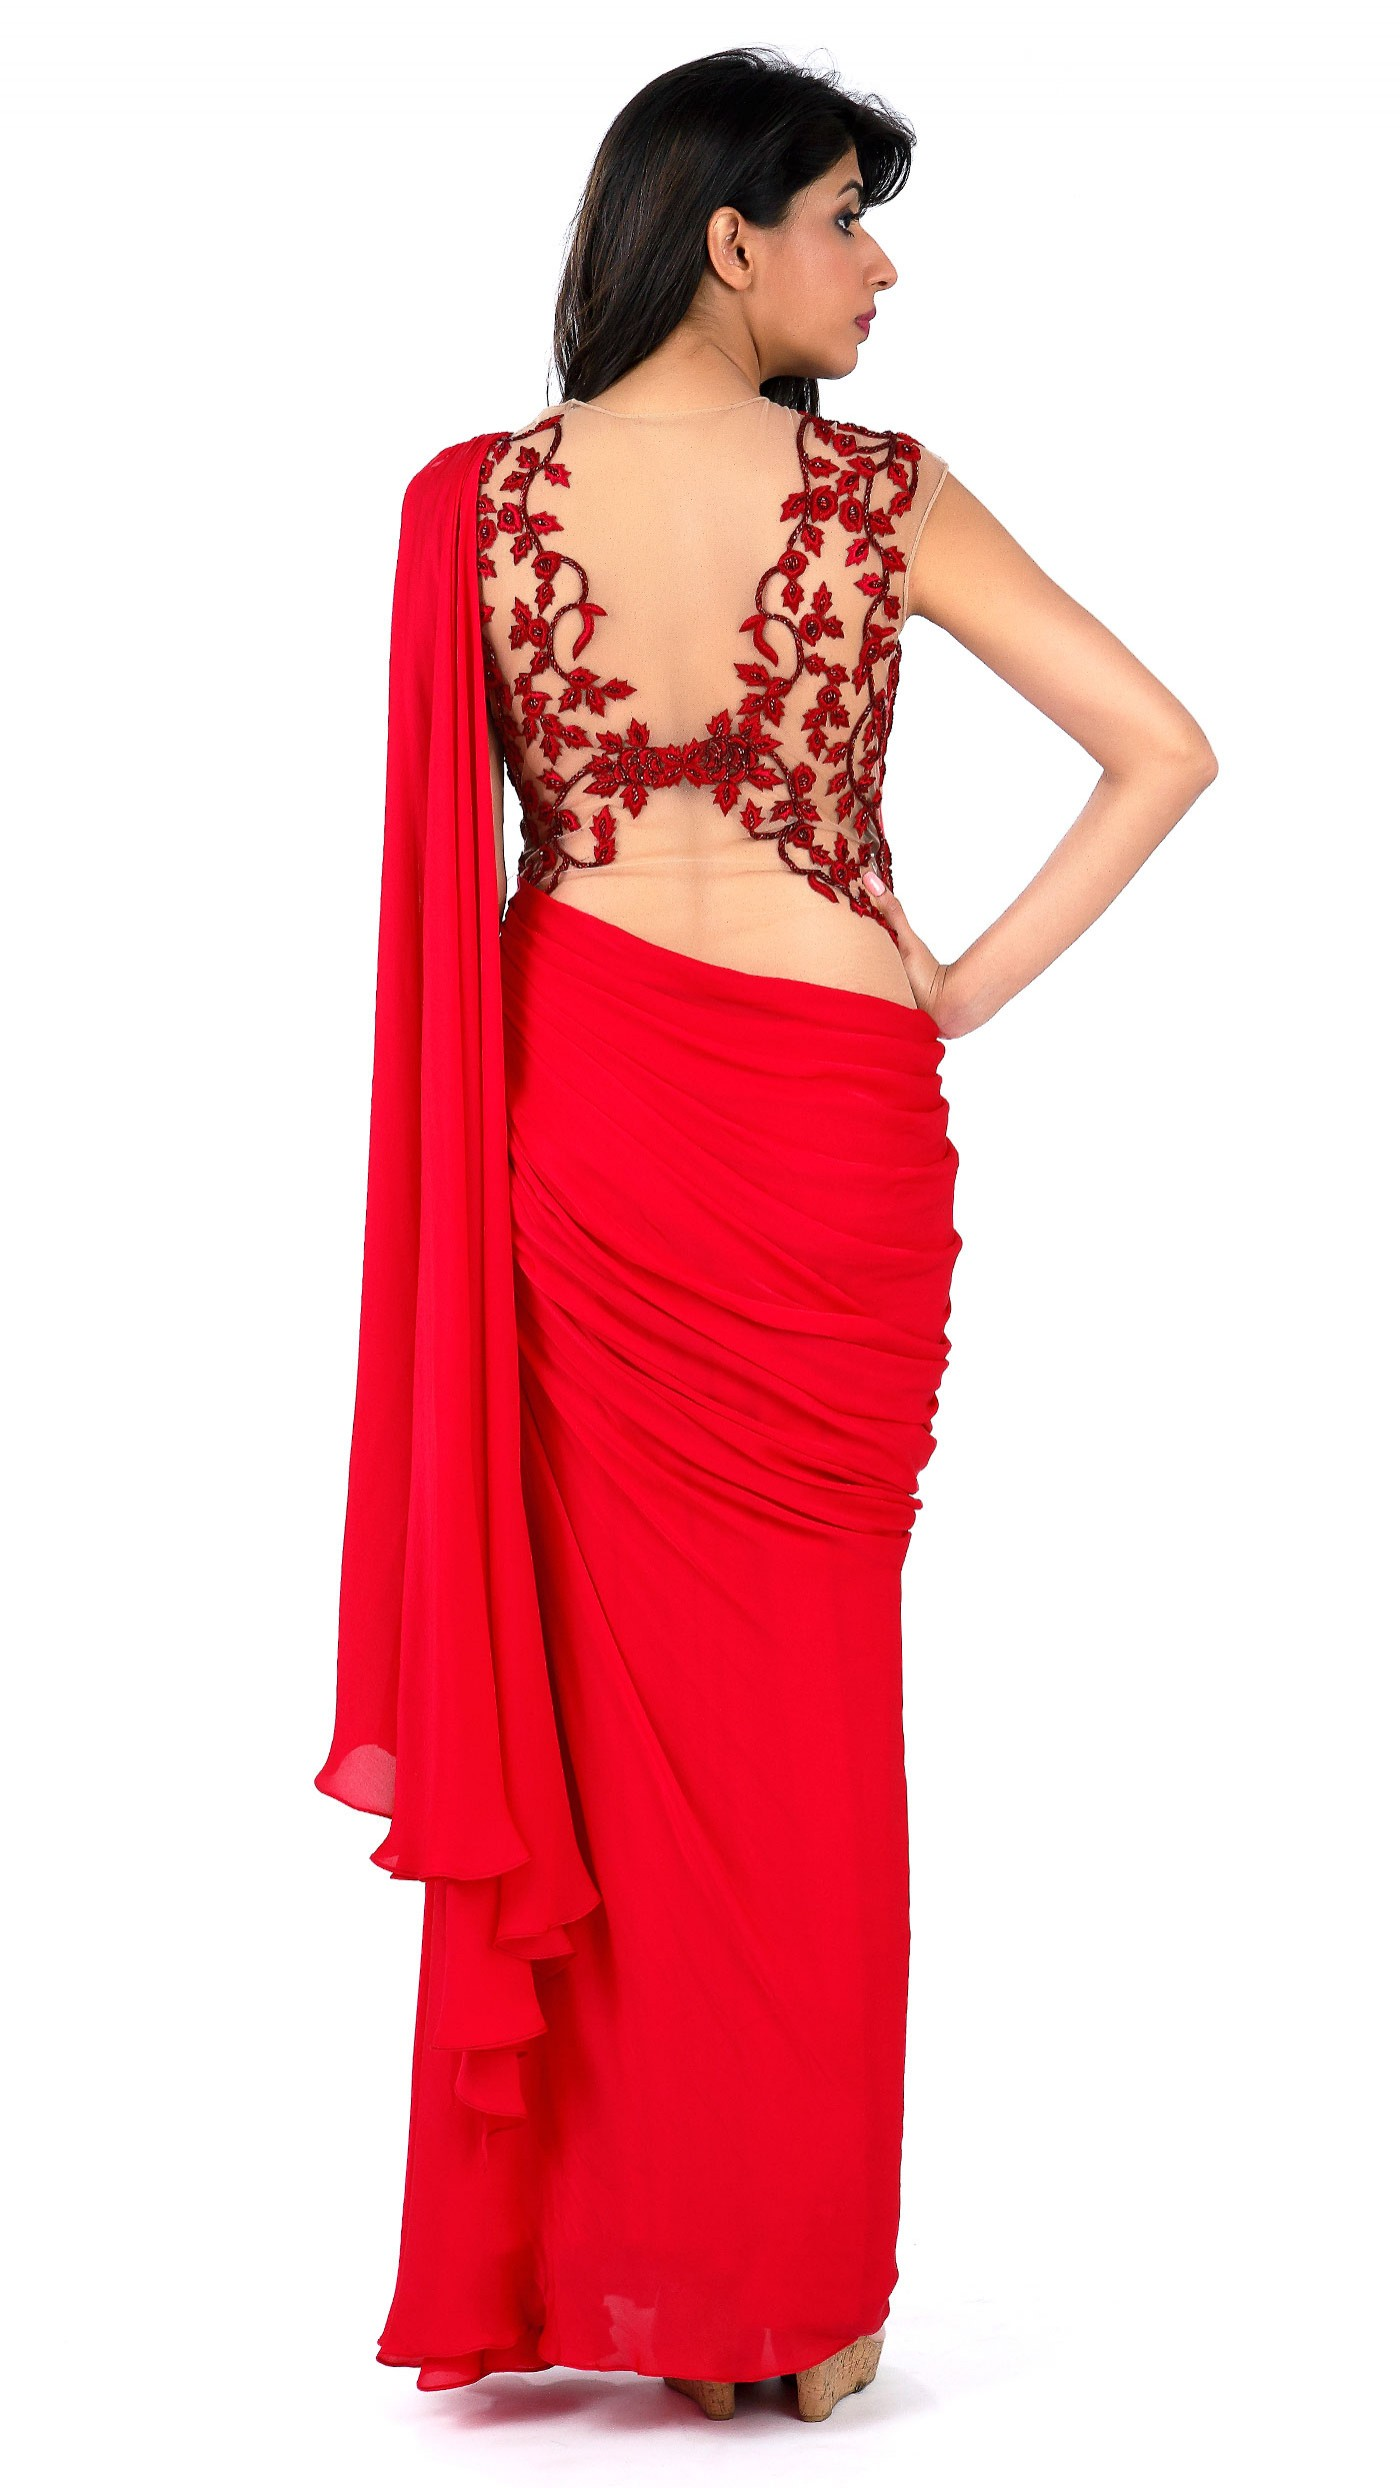 Sonaakshi raaj 39 s red saree gown with highlights for Luxury clothing